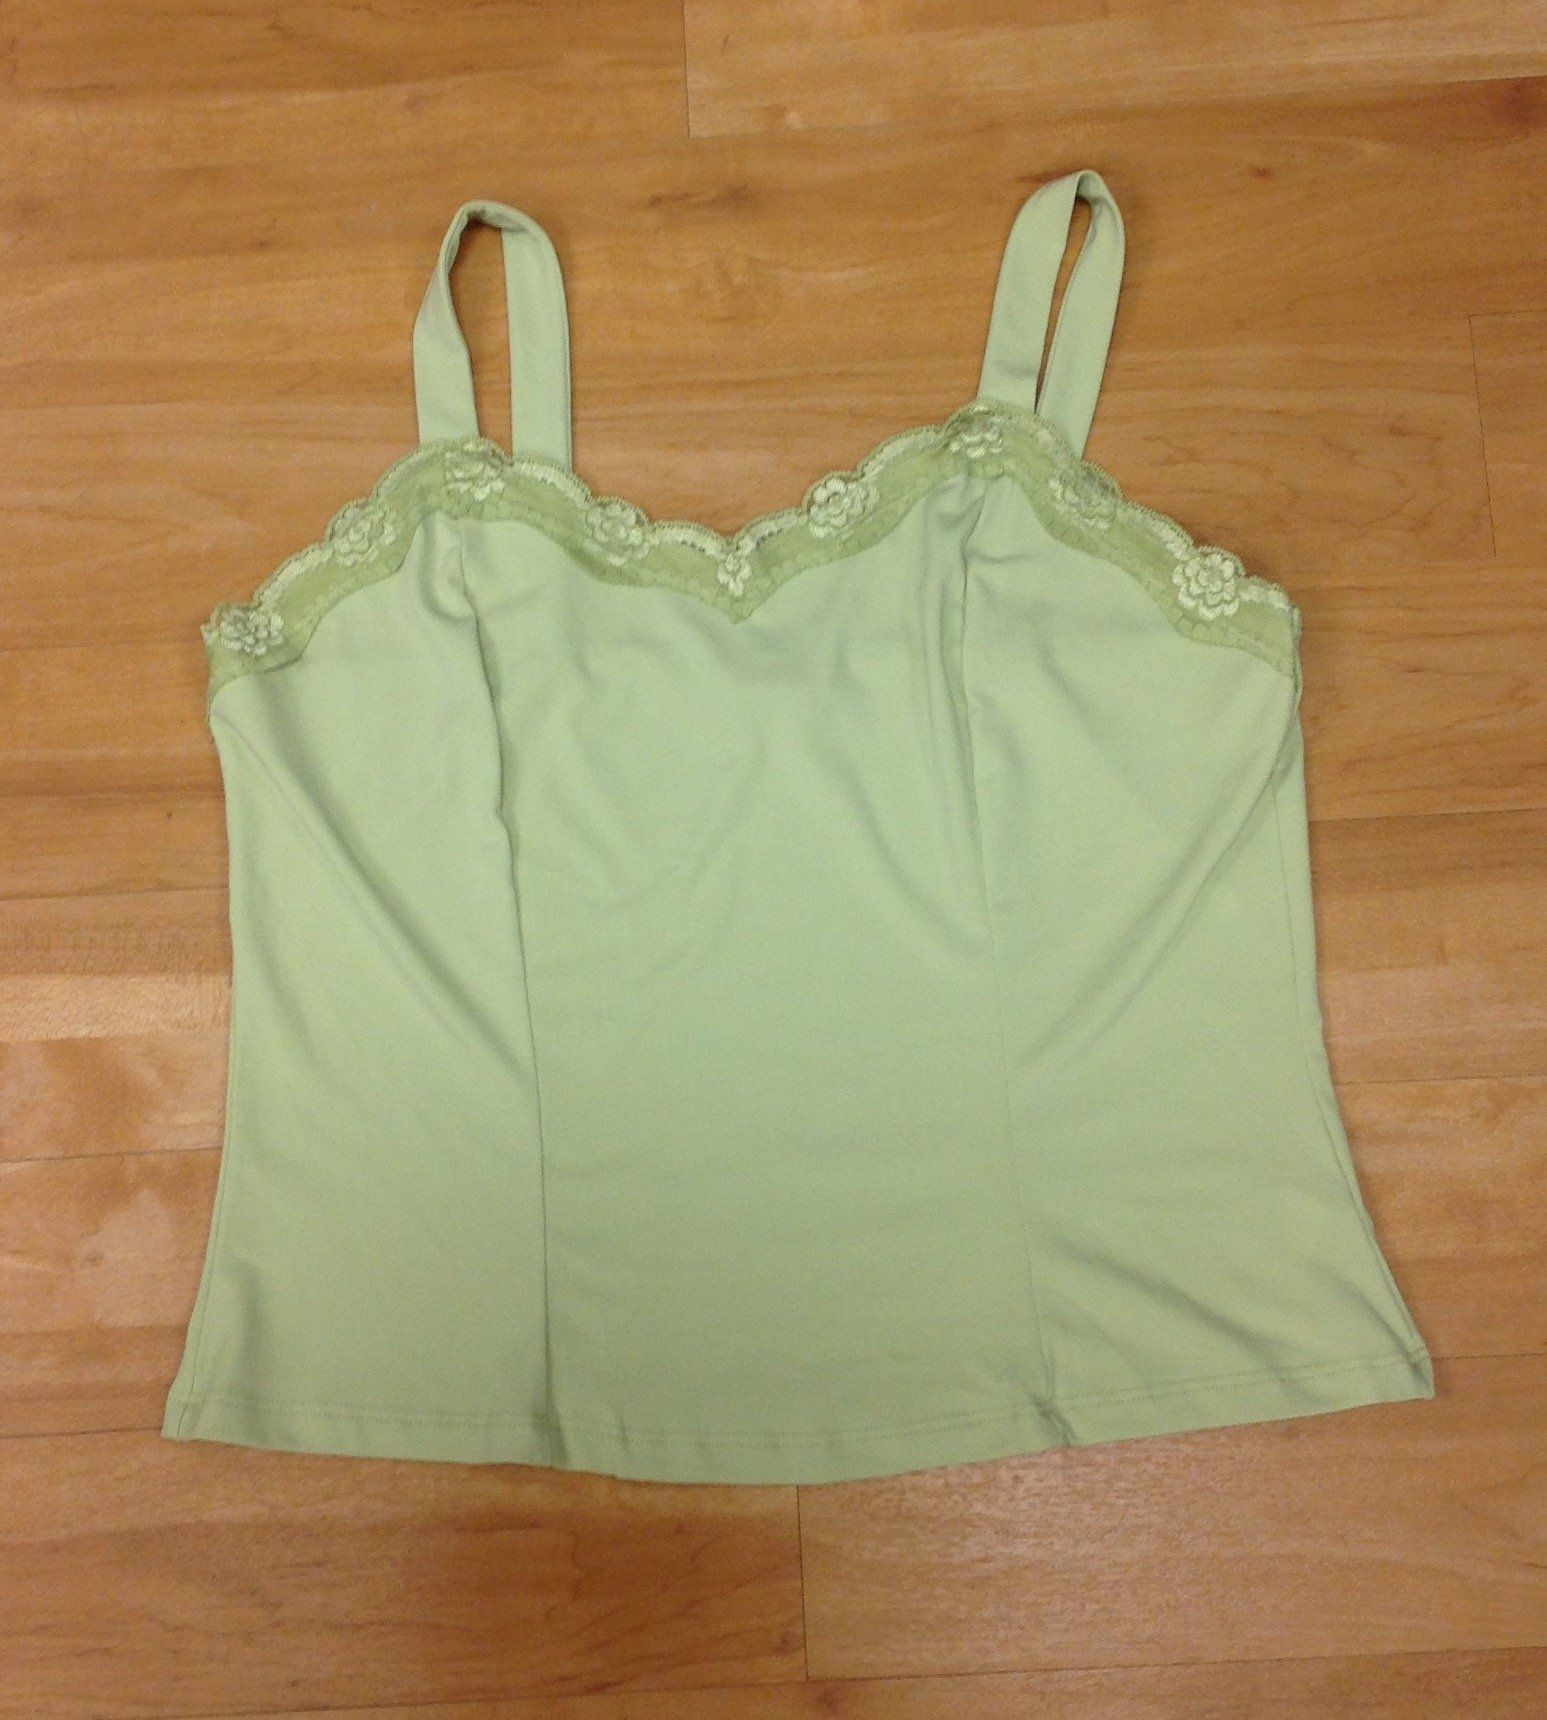 Top Sleeveless By Clothes Mentor  Size: L